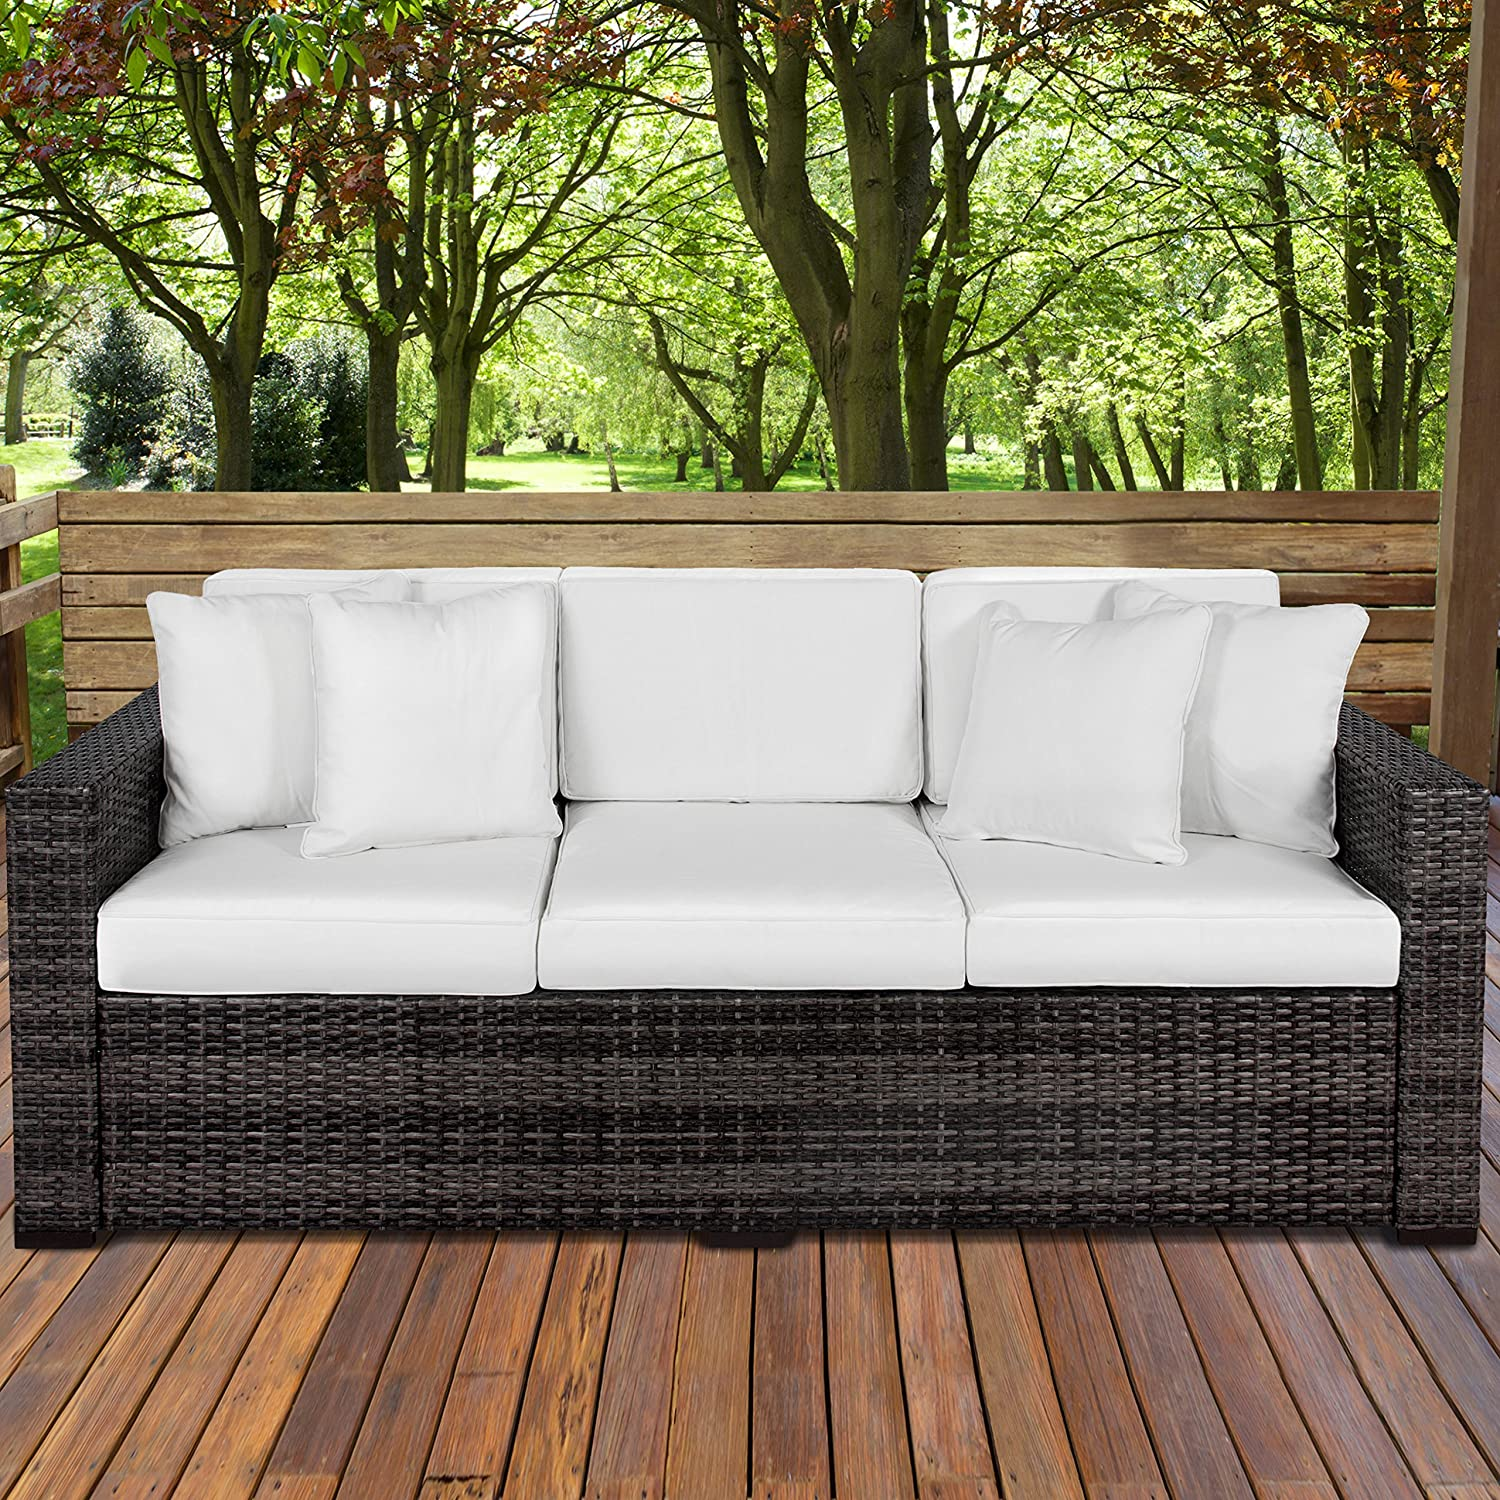 Amazon.com : Best Choice Products 3 Seat Outdoor Wicker Sofa Couch Patio  Furniture W/Steel Frame, Removable Cushions   Gray : Garden U0026 Outdoor